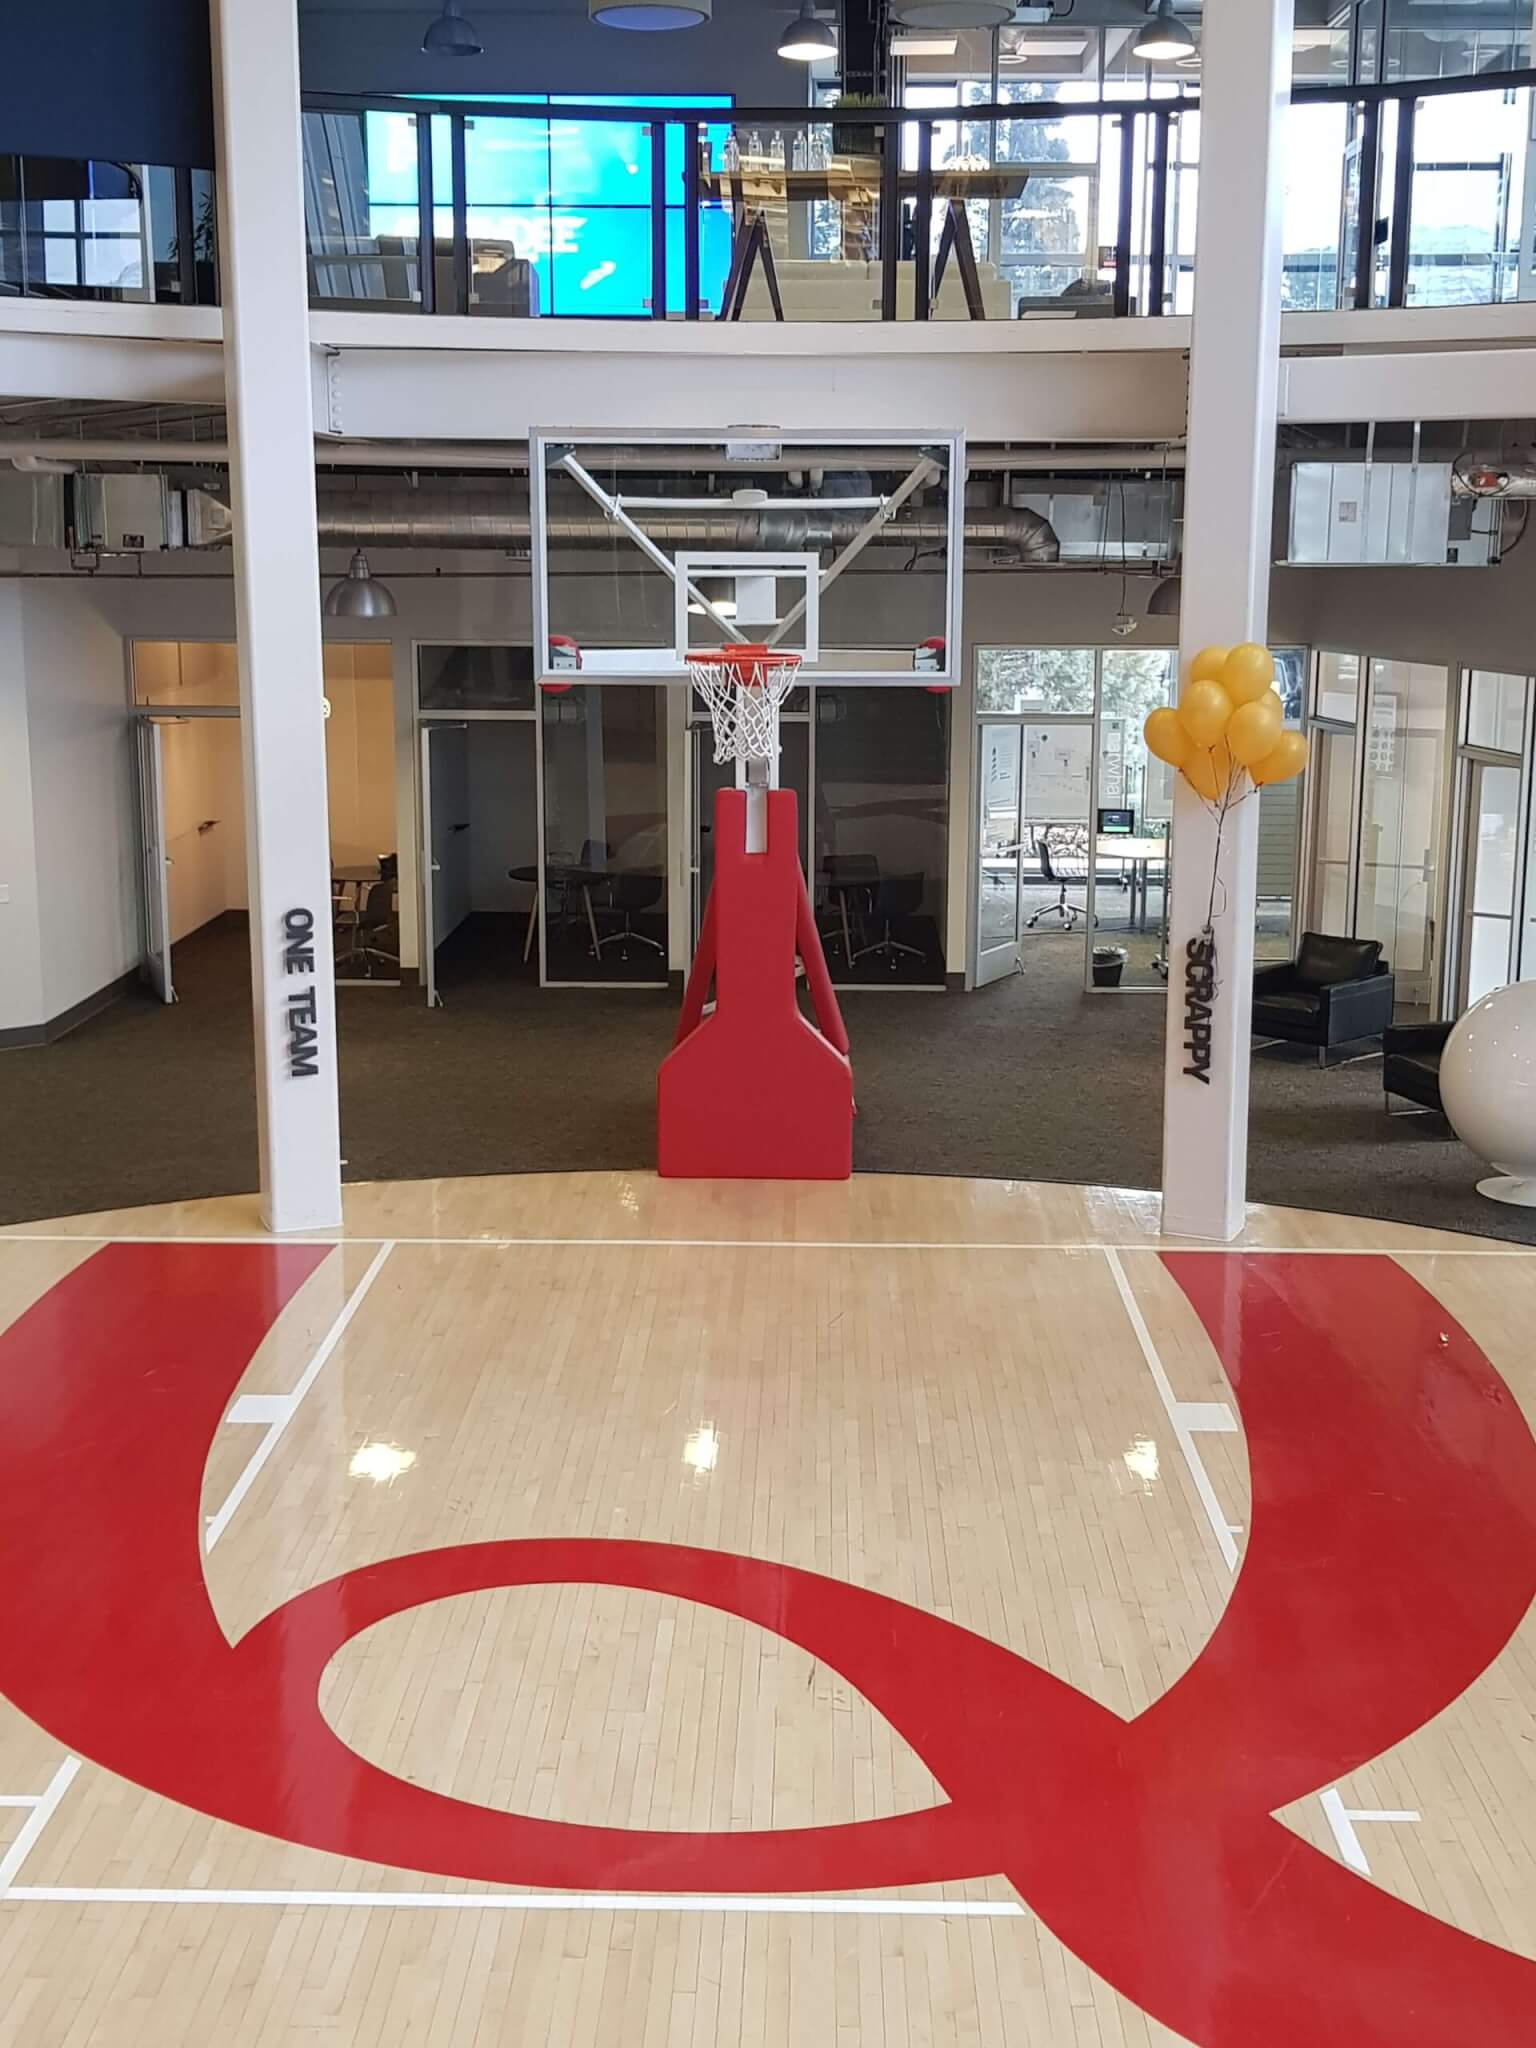 The Qualtrics Provo HQ main entry, which features a basketball court with a giant red letter Q on the floor. PIctured also is 2 of the 5 TACOS pillars - One Team & Scrappy